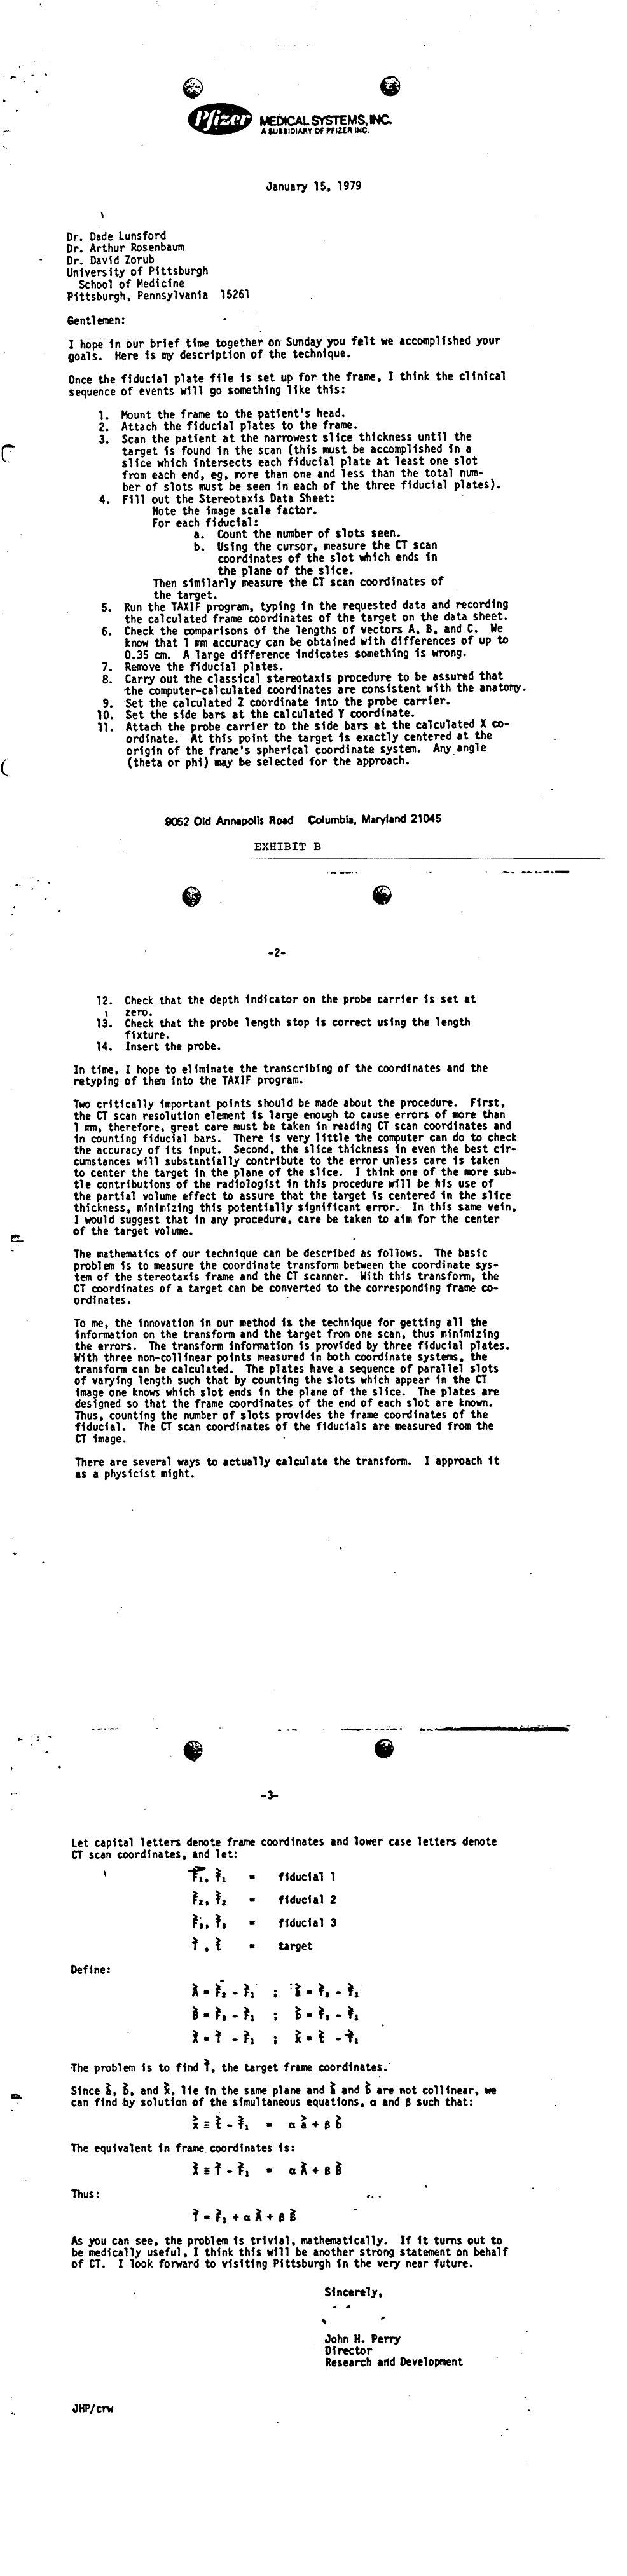 Appendix 1: John Perry Letter, pp. 1-3, January 15, 1979